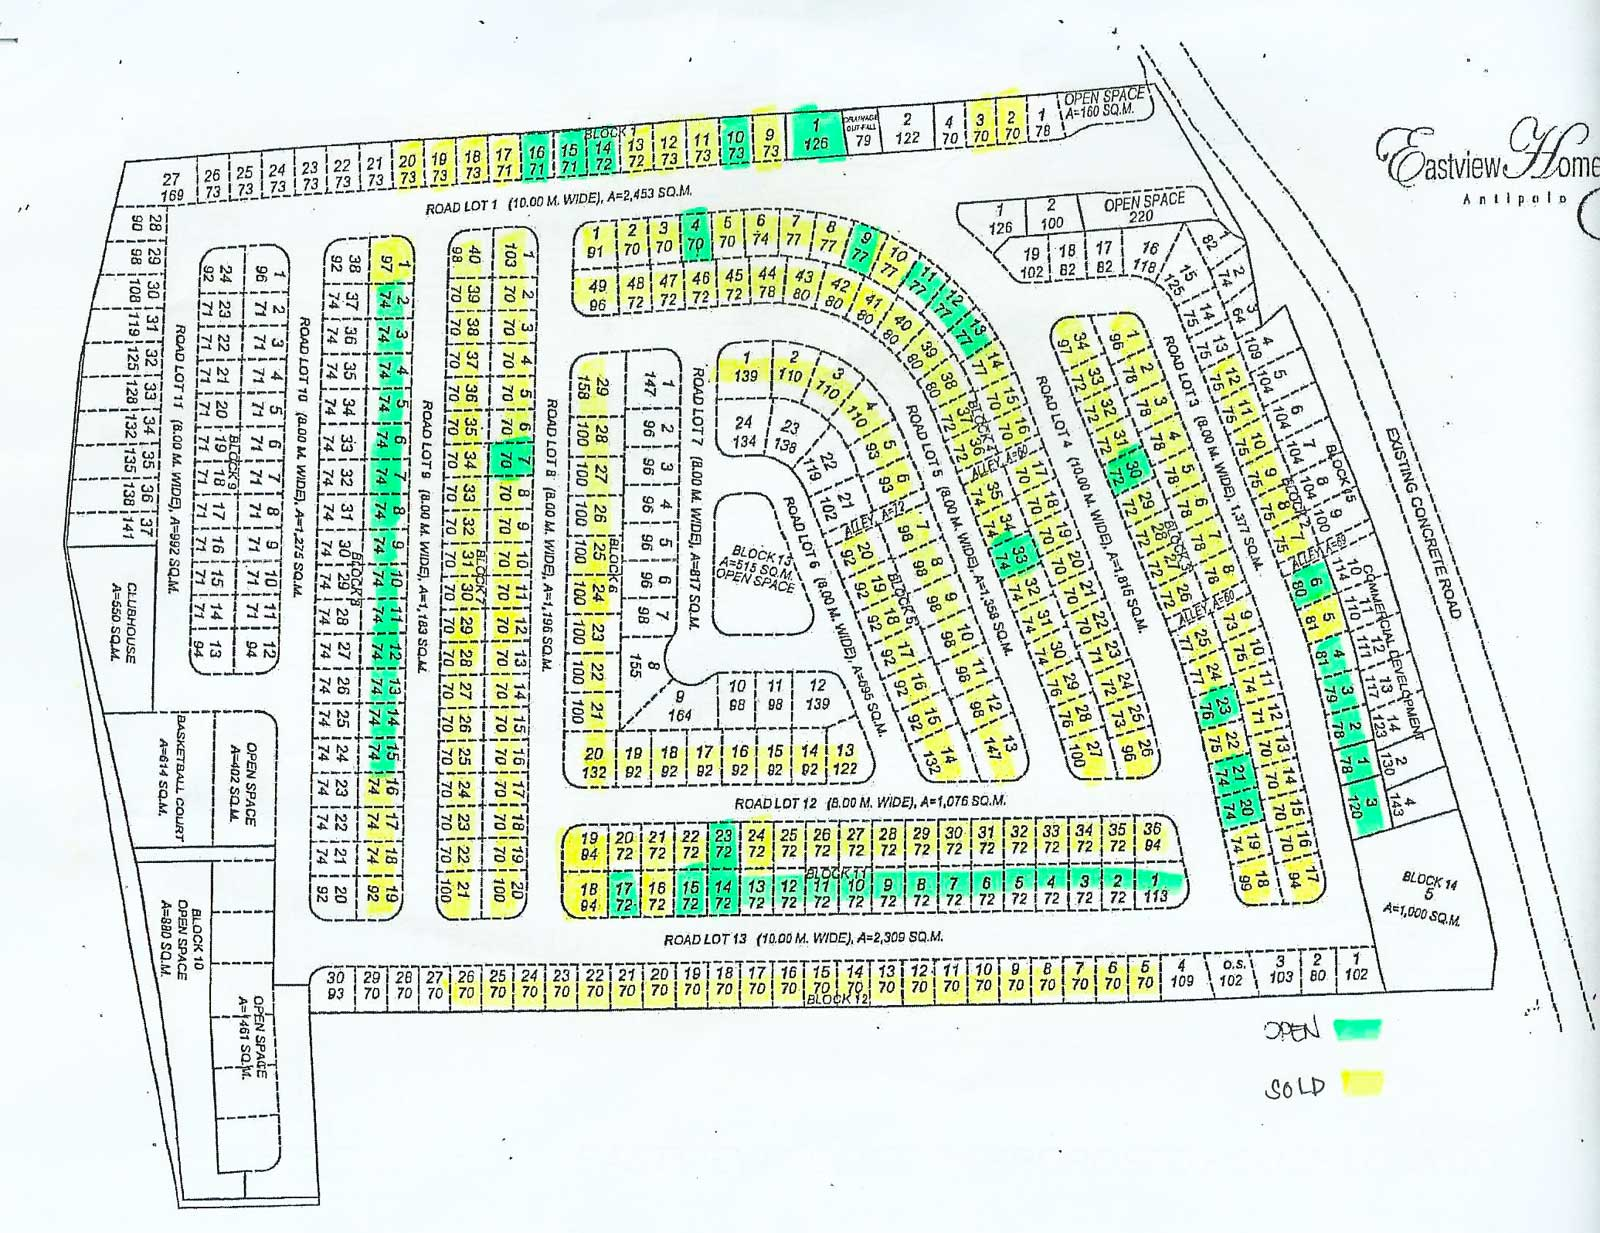 Eastview Homes 3 - Site Development Plan